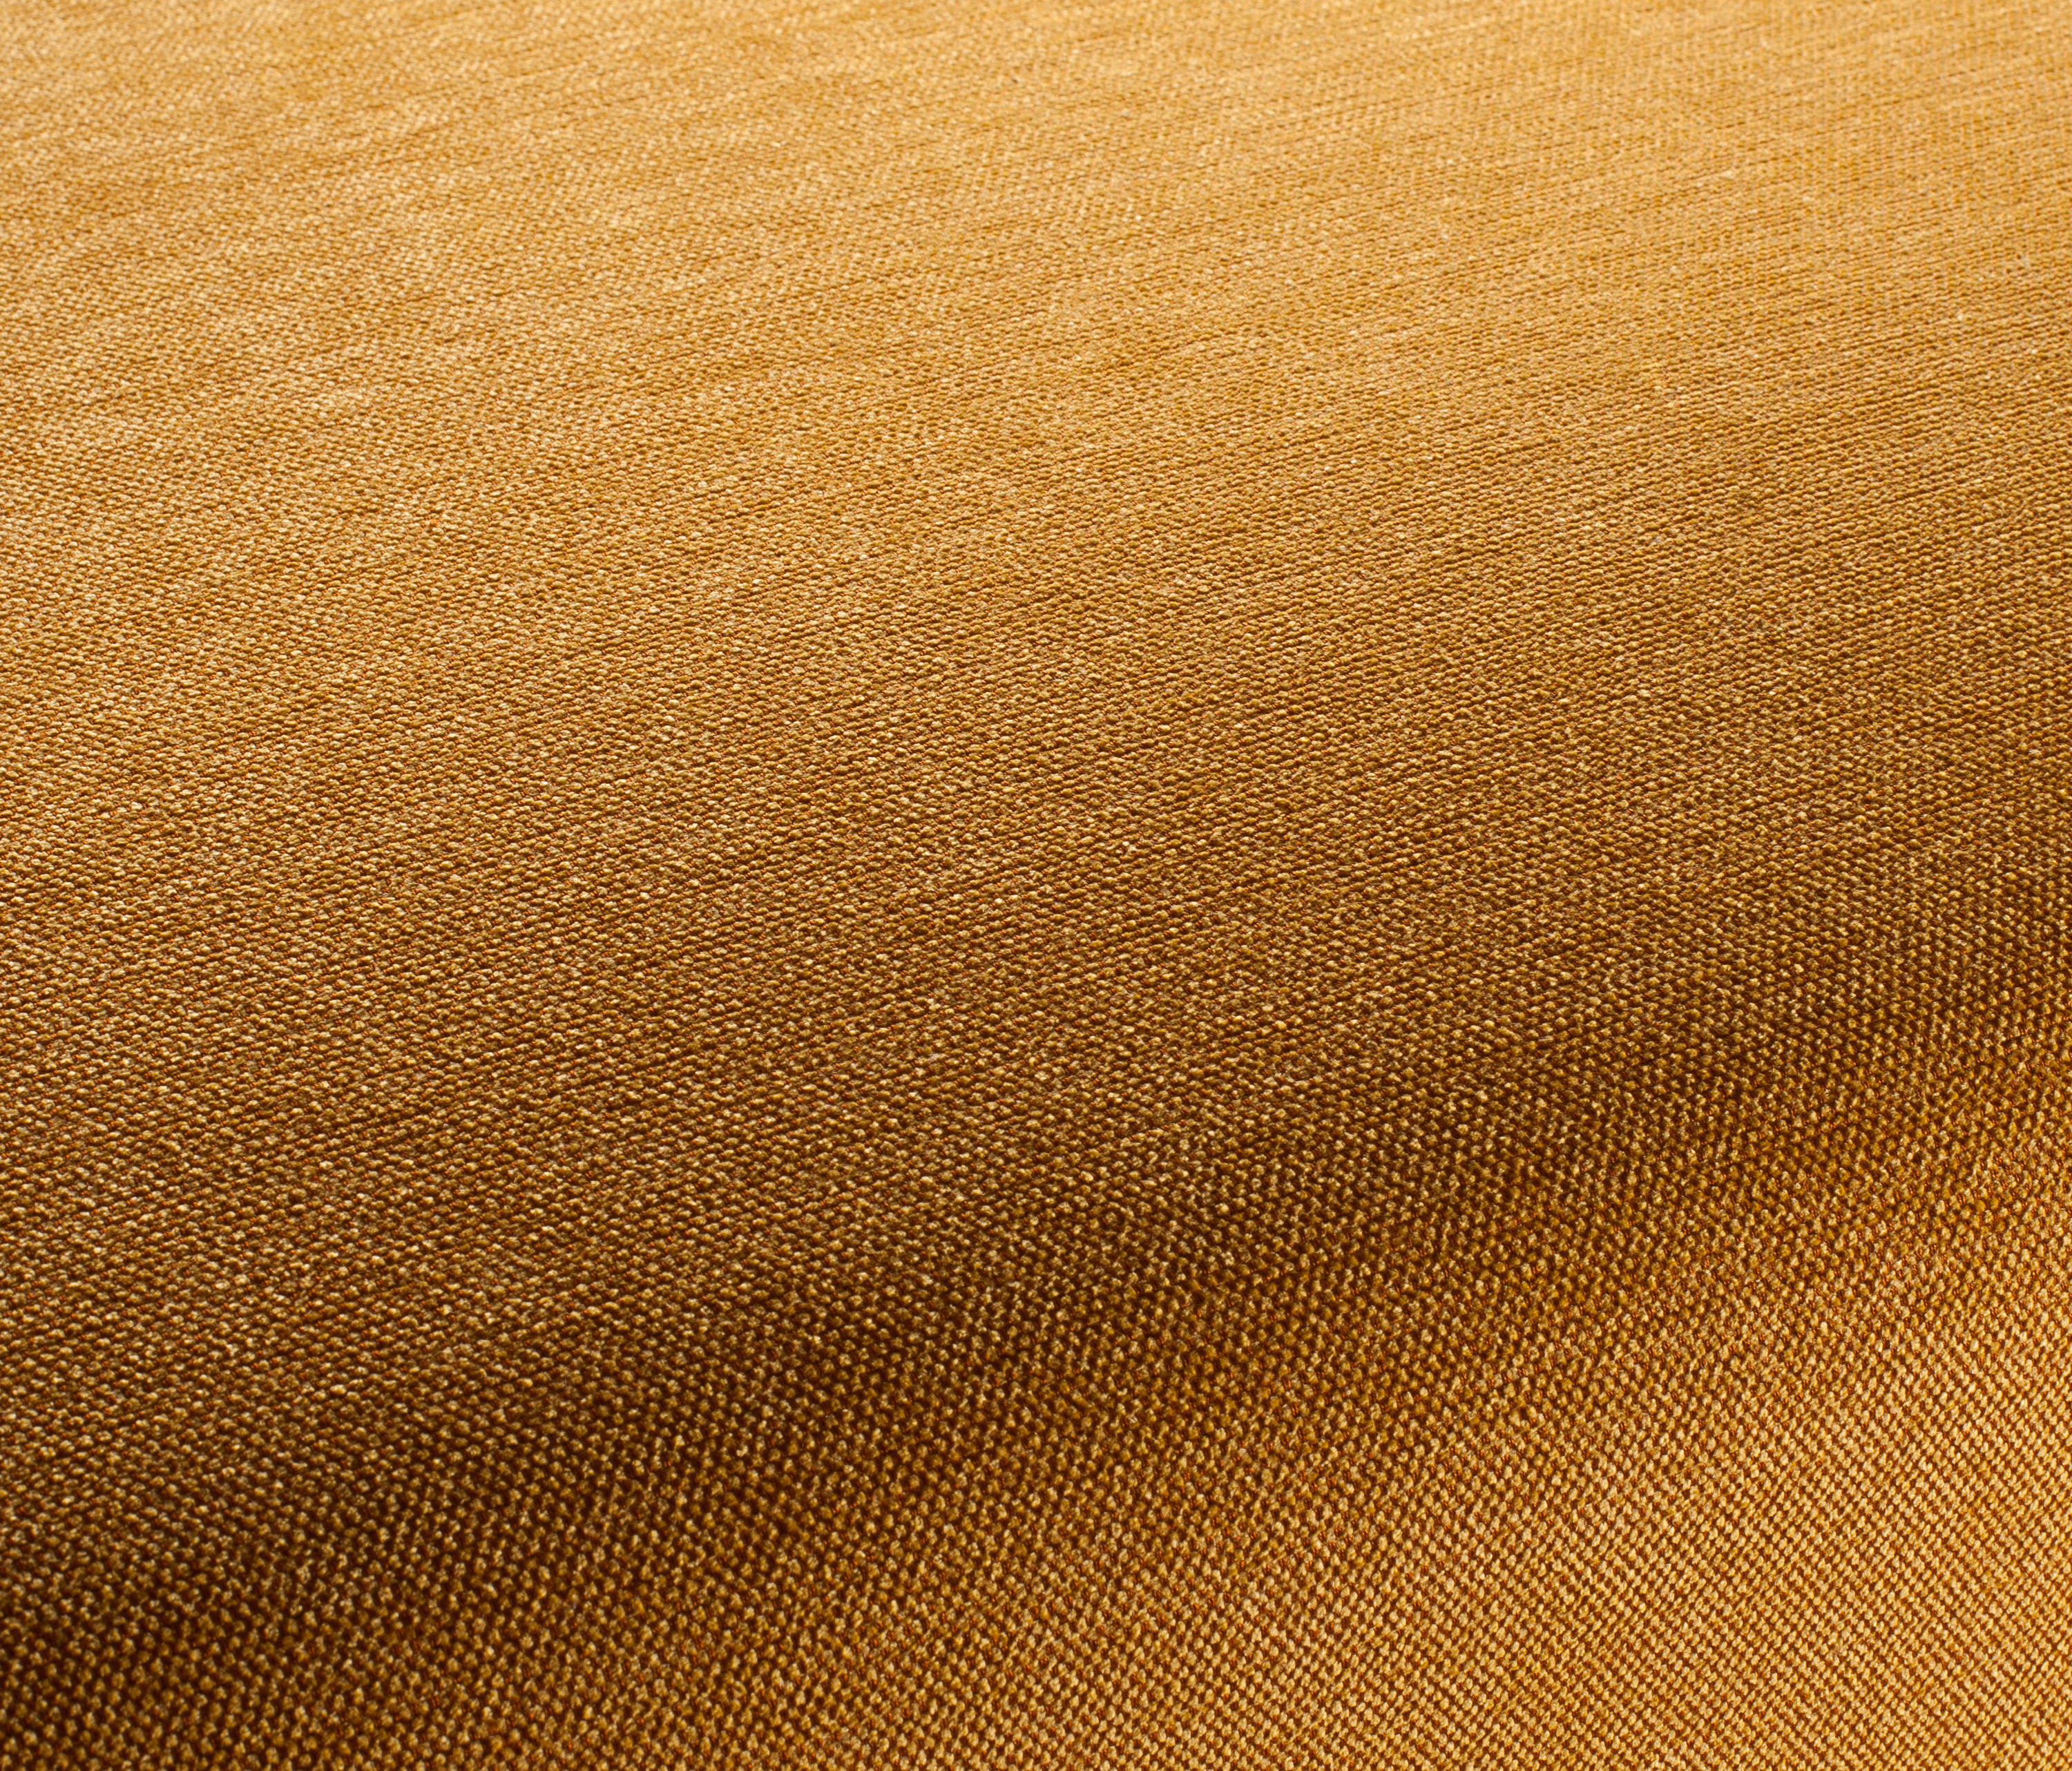 luxx 042 fabrics from carpet concept architonic. Black Bedroom Furniture Sets. Home Design Ideas